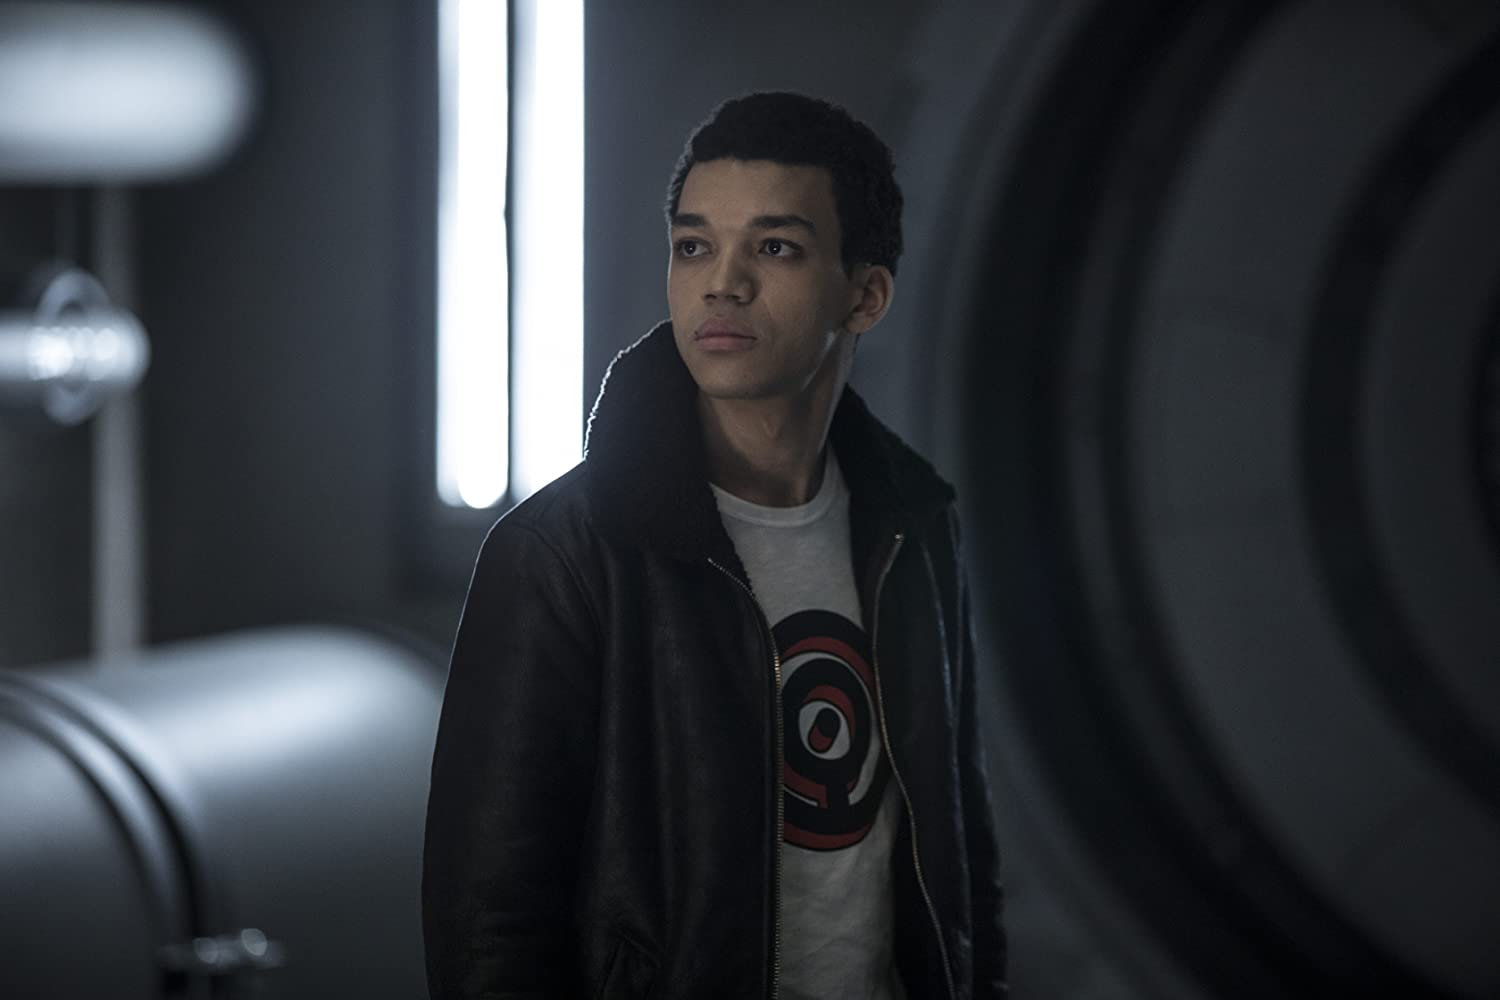 Justice Smith in Pokémon Detective Pikachu (2019)